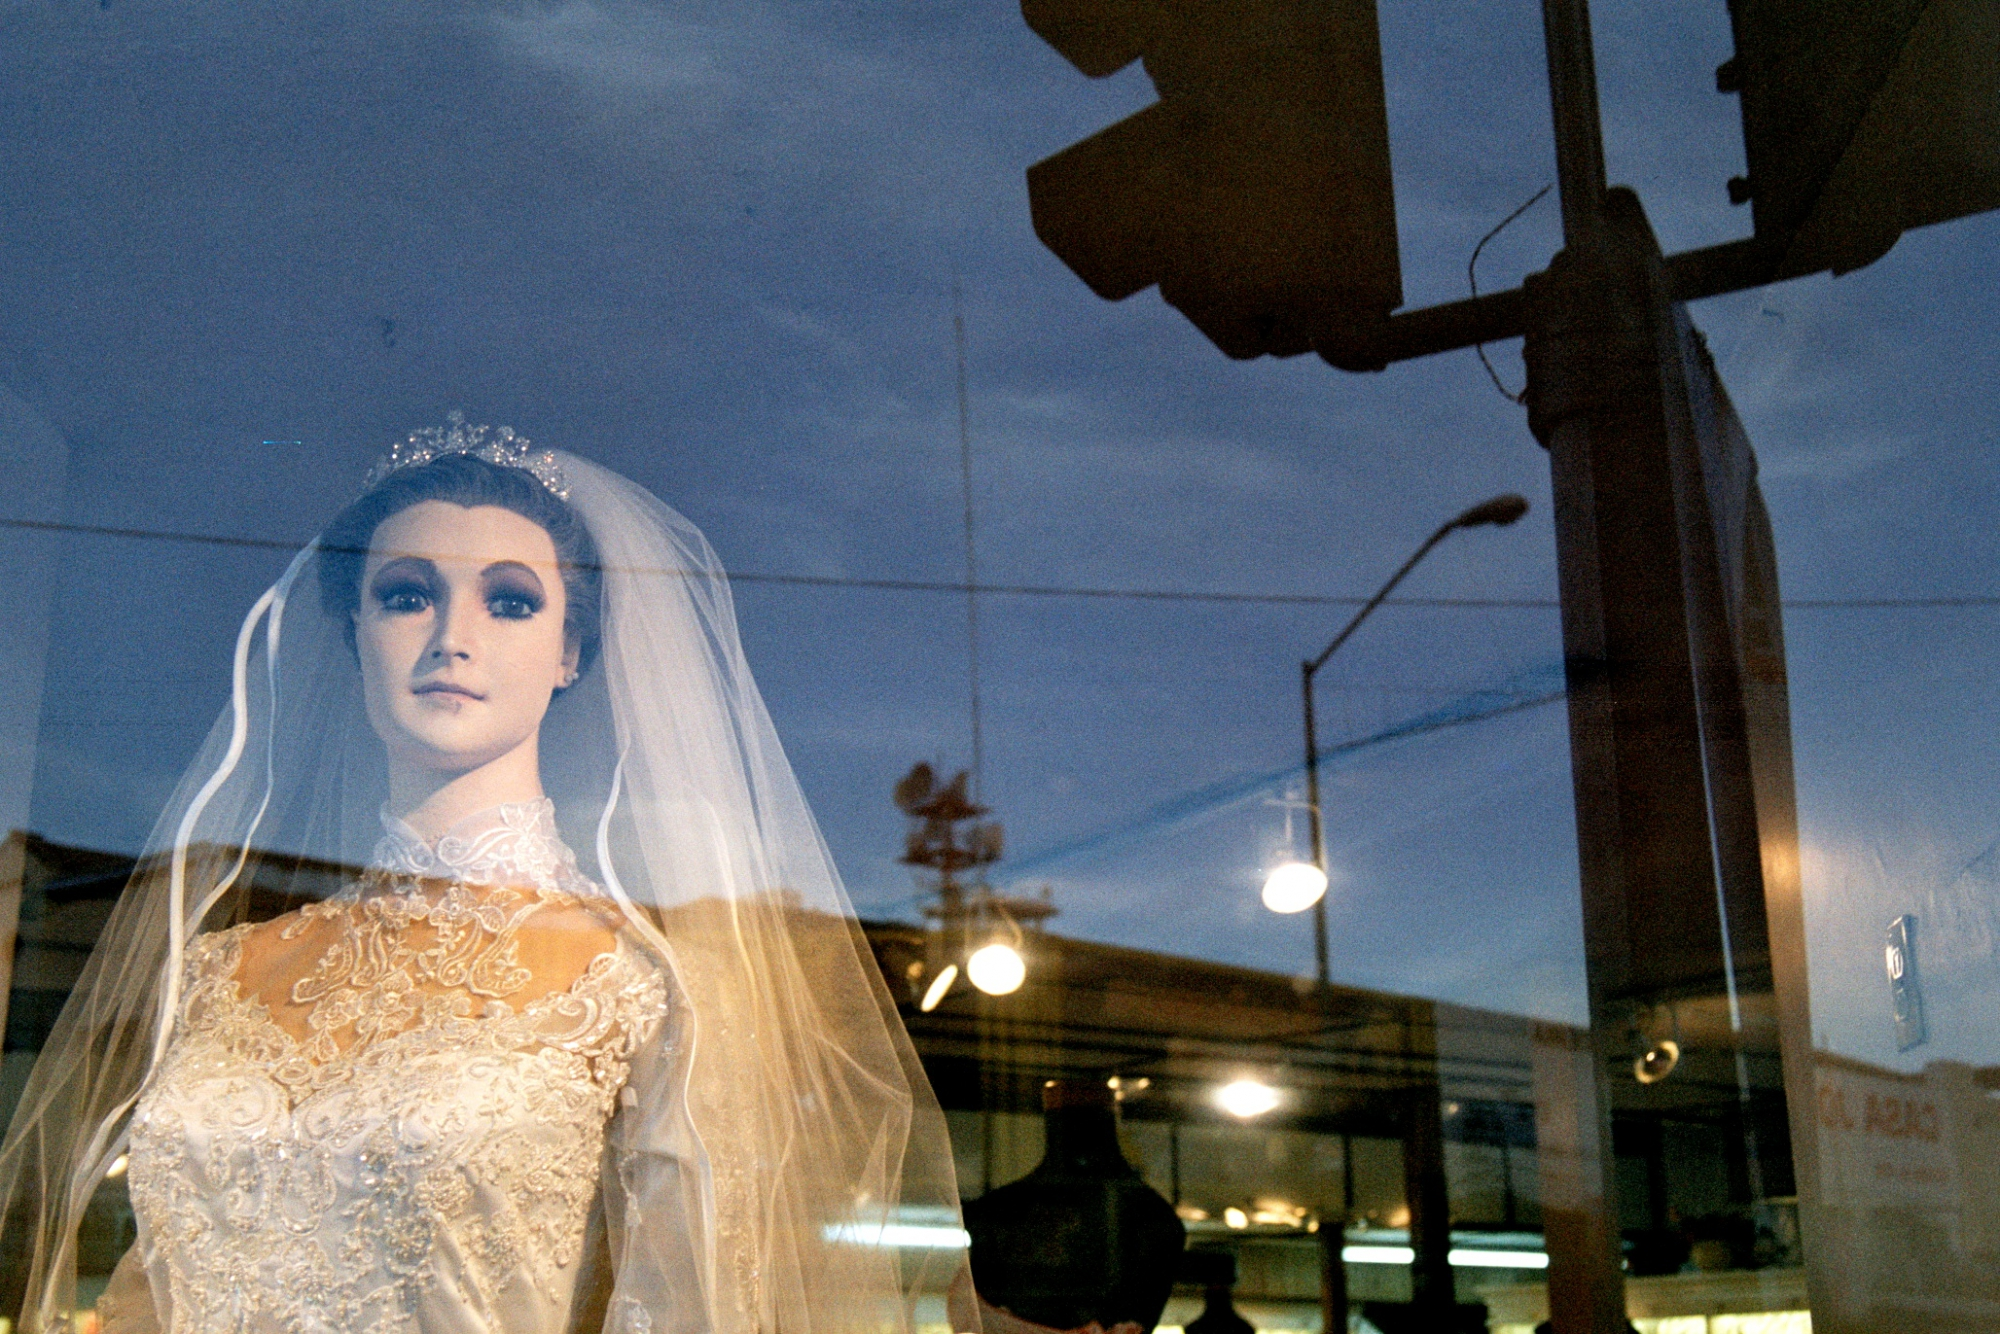 The Creepiest Mannequin Ever Lives in a Bridal Shop от Marinara за 21 nov 2012